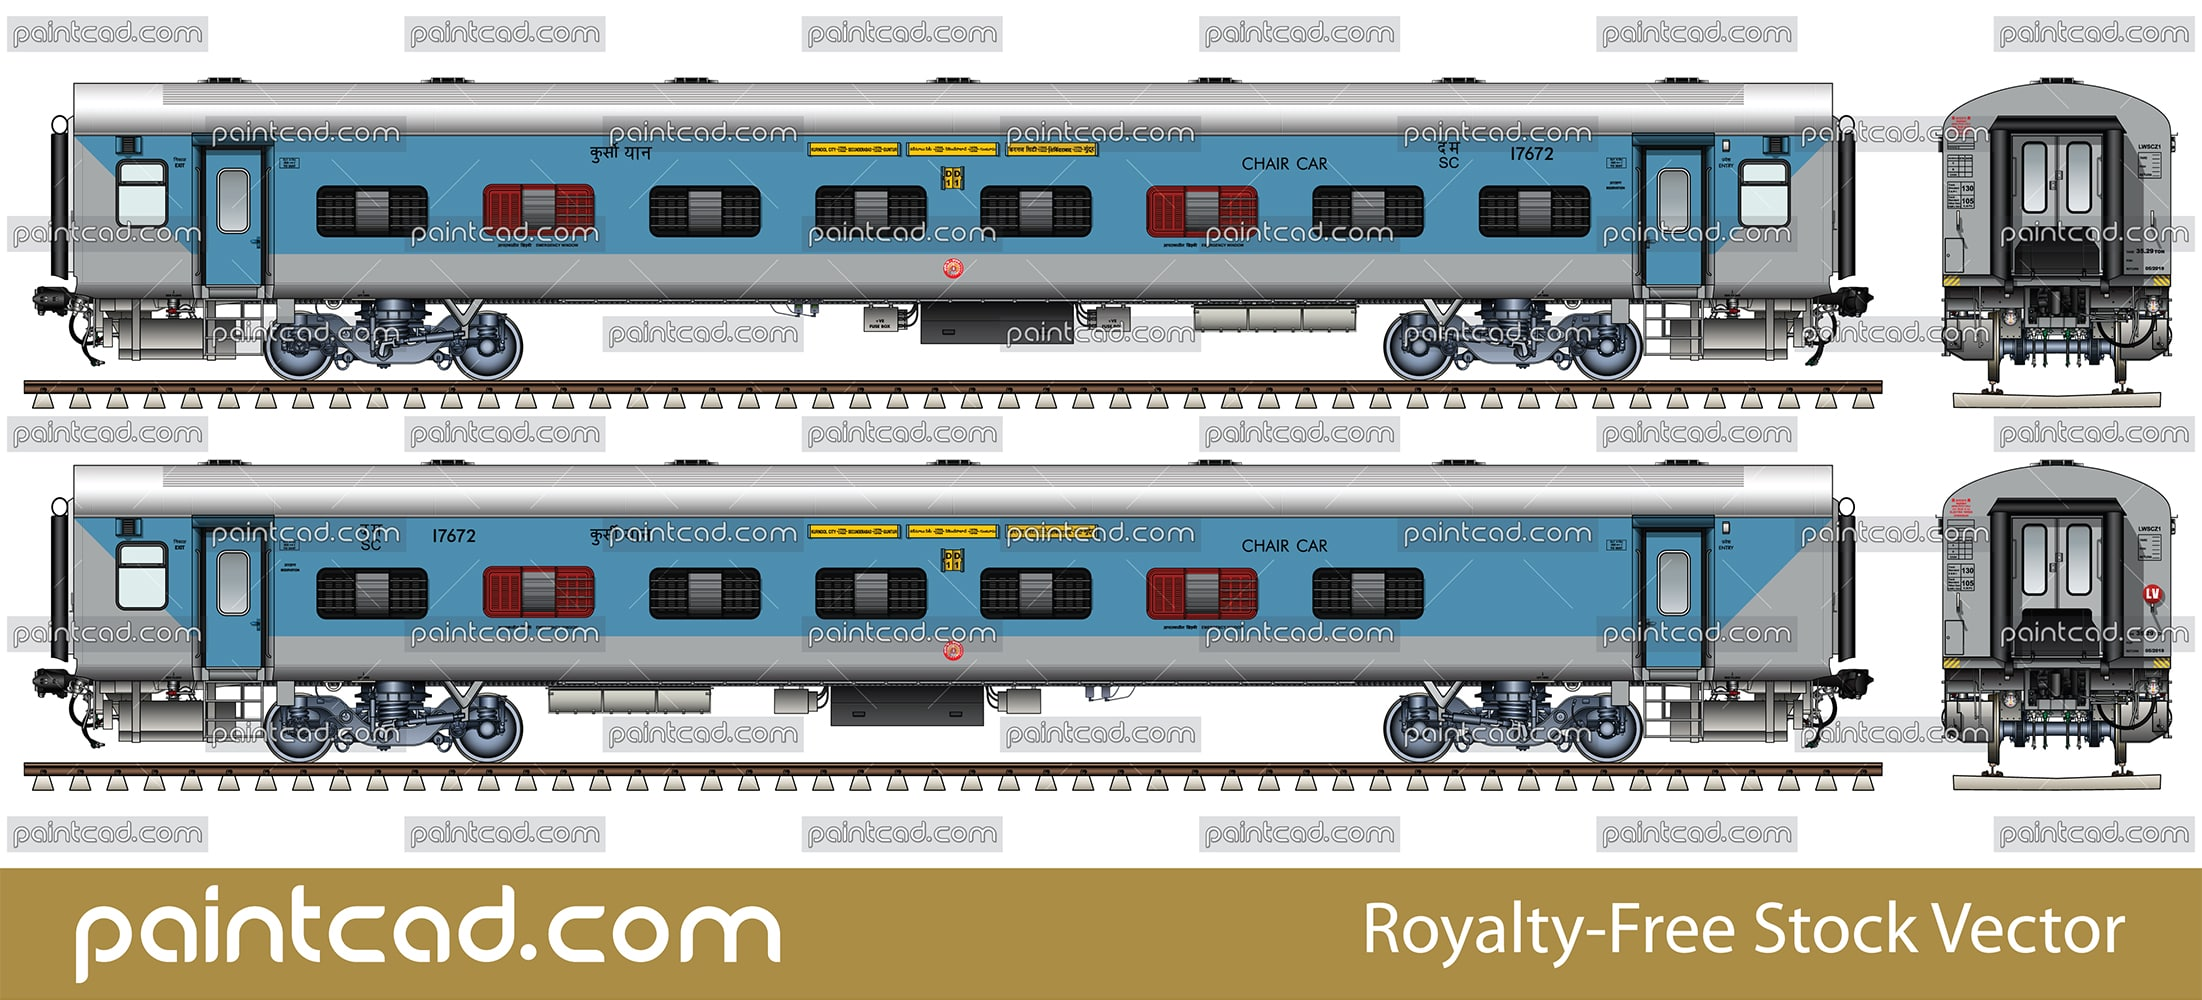 LHB car by Kurnool City-Guntur-Secunderabad Intercity express - vector illustration